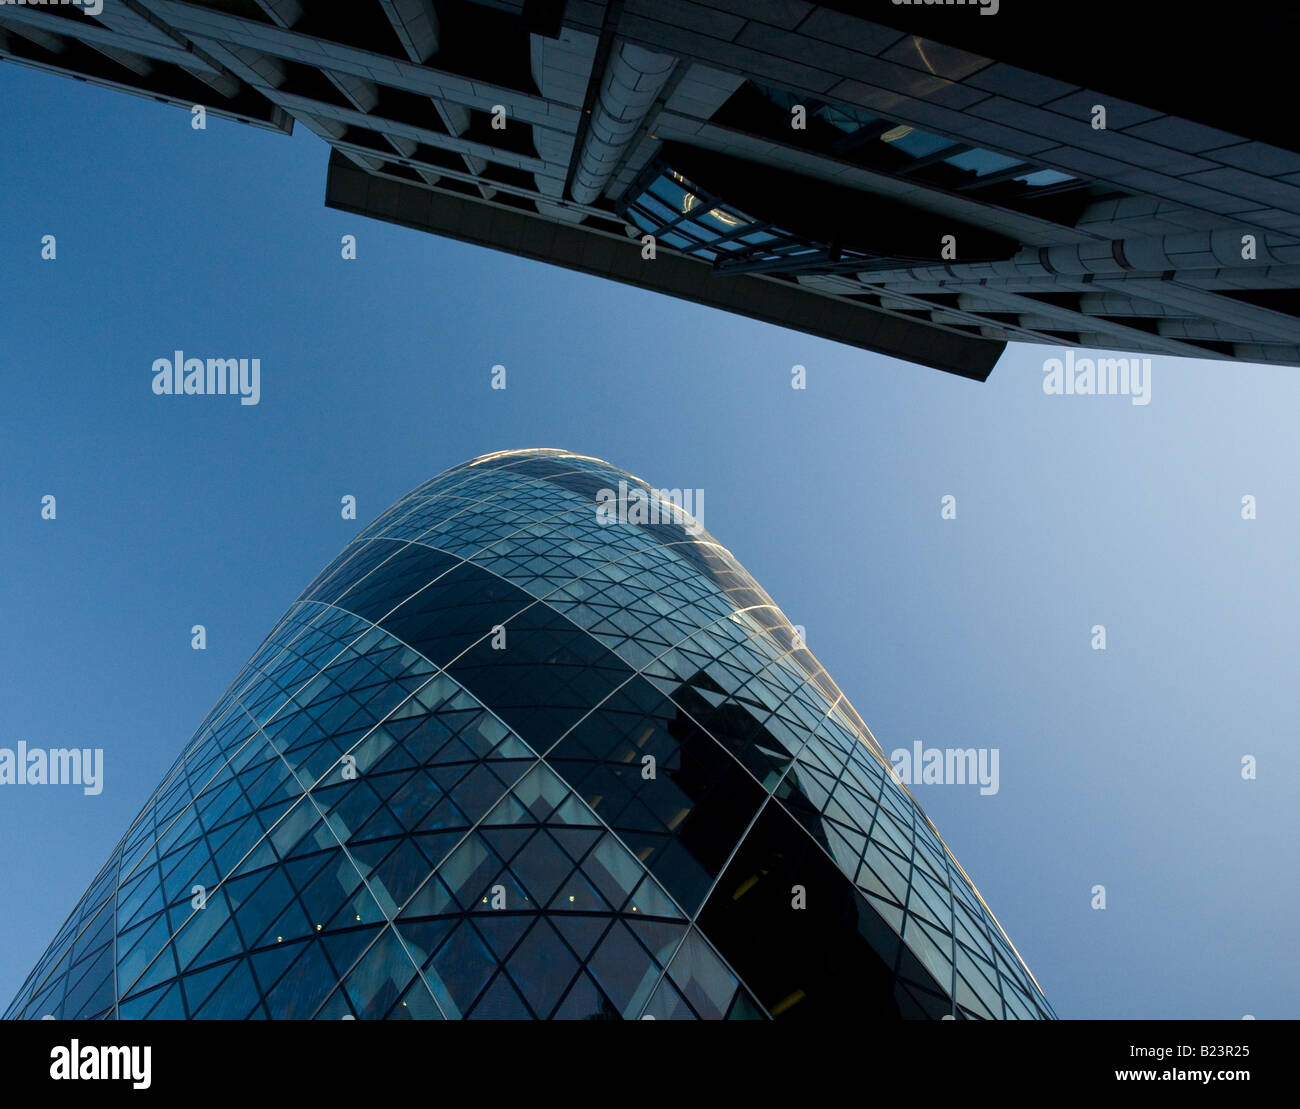 Looking up at 30 St. Mary Axe, more commonly known as 'The Gherkin', in London. - Stock Image